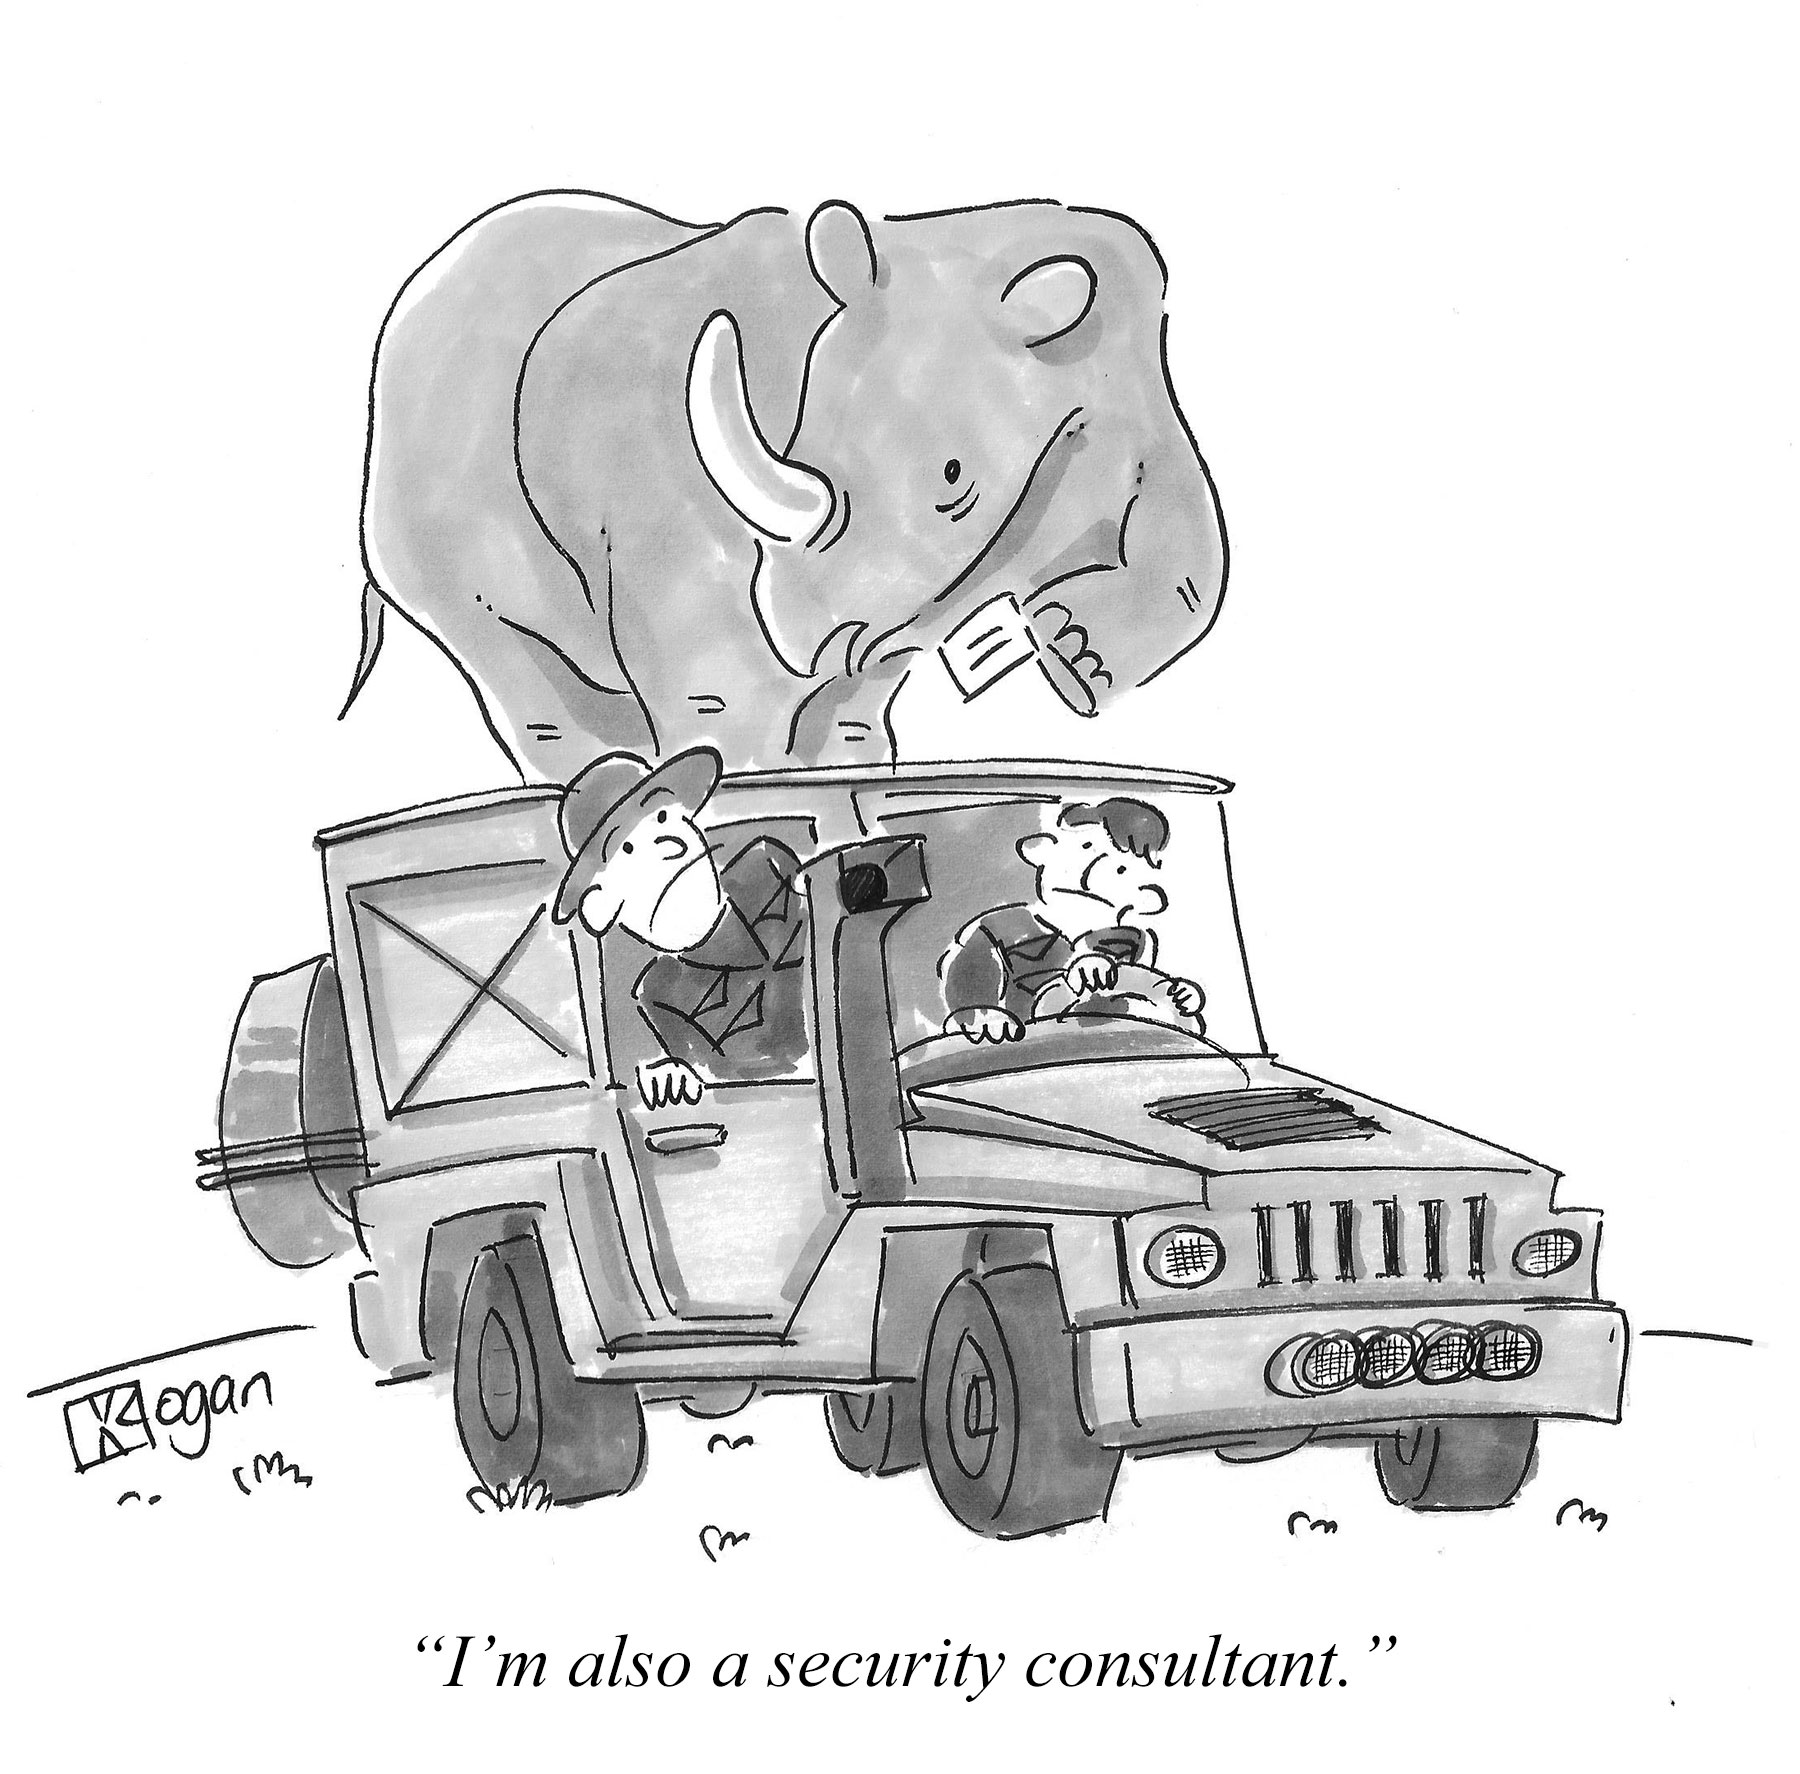 I'm also a security consultant.